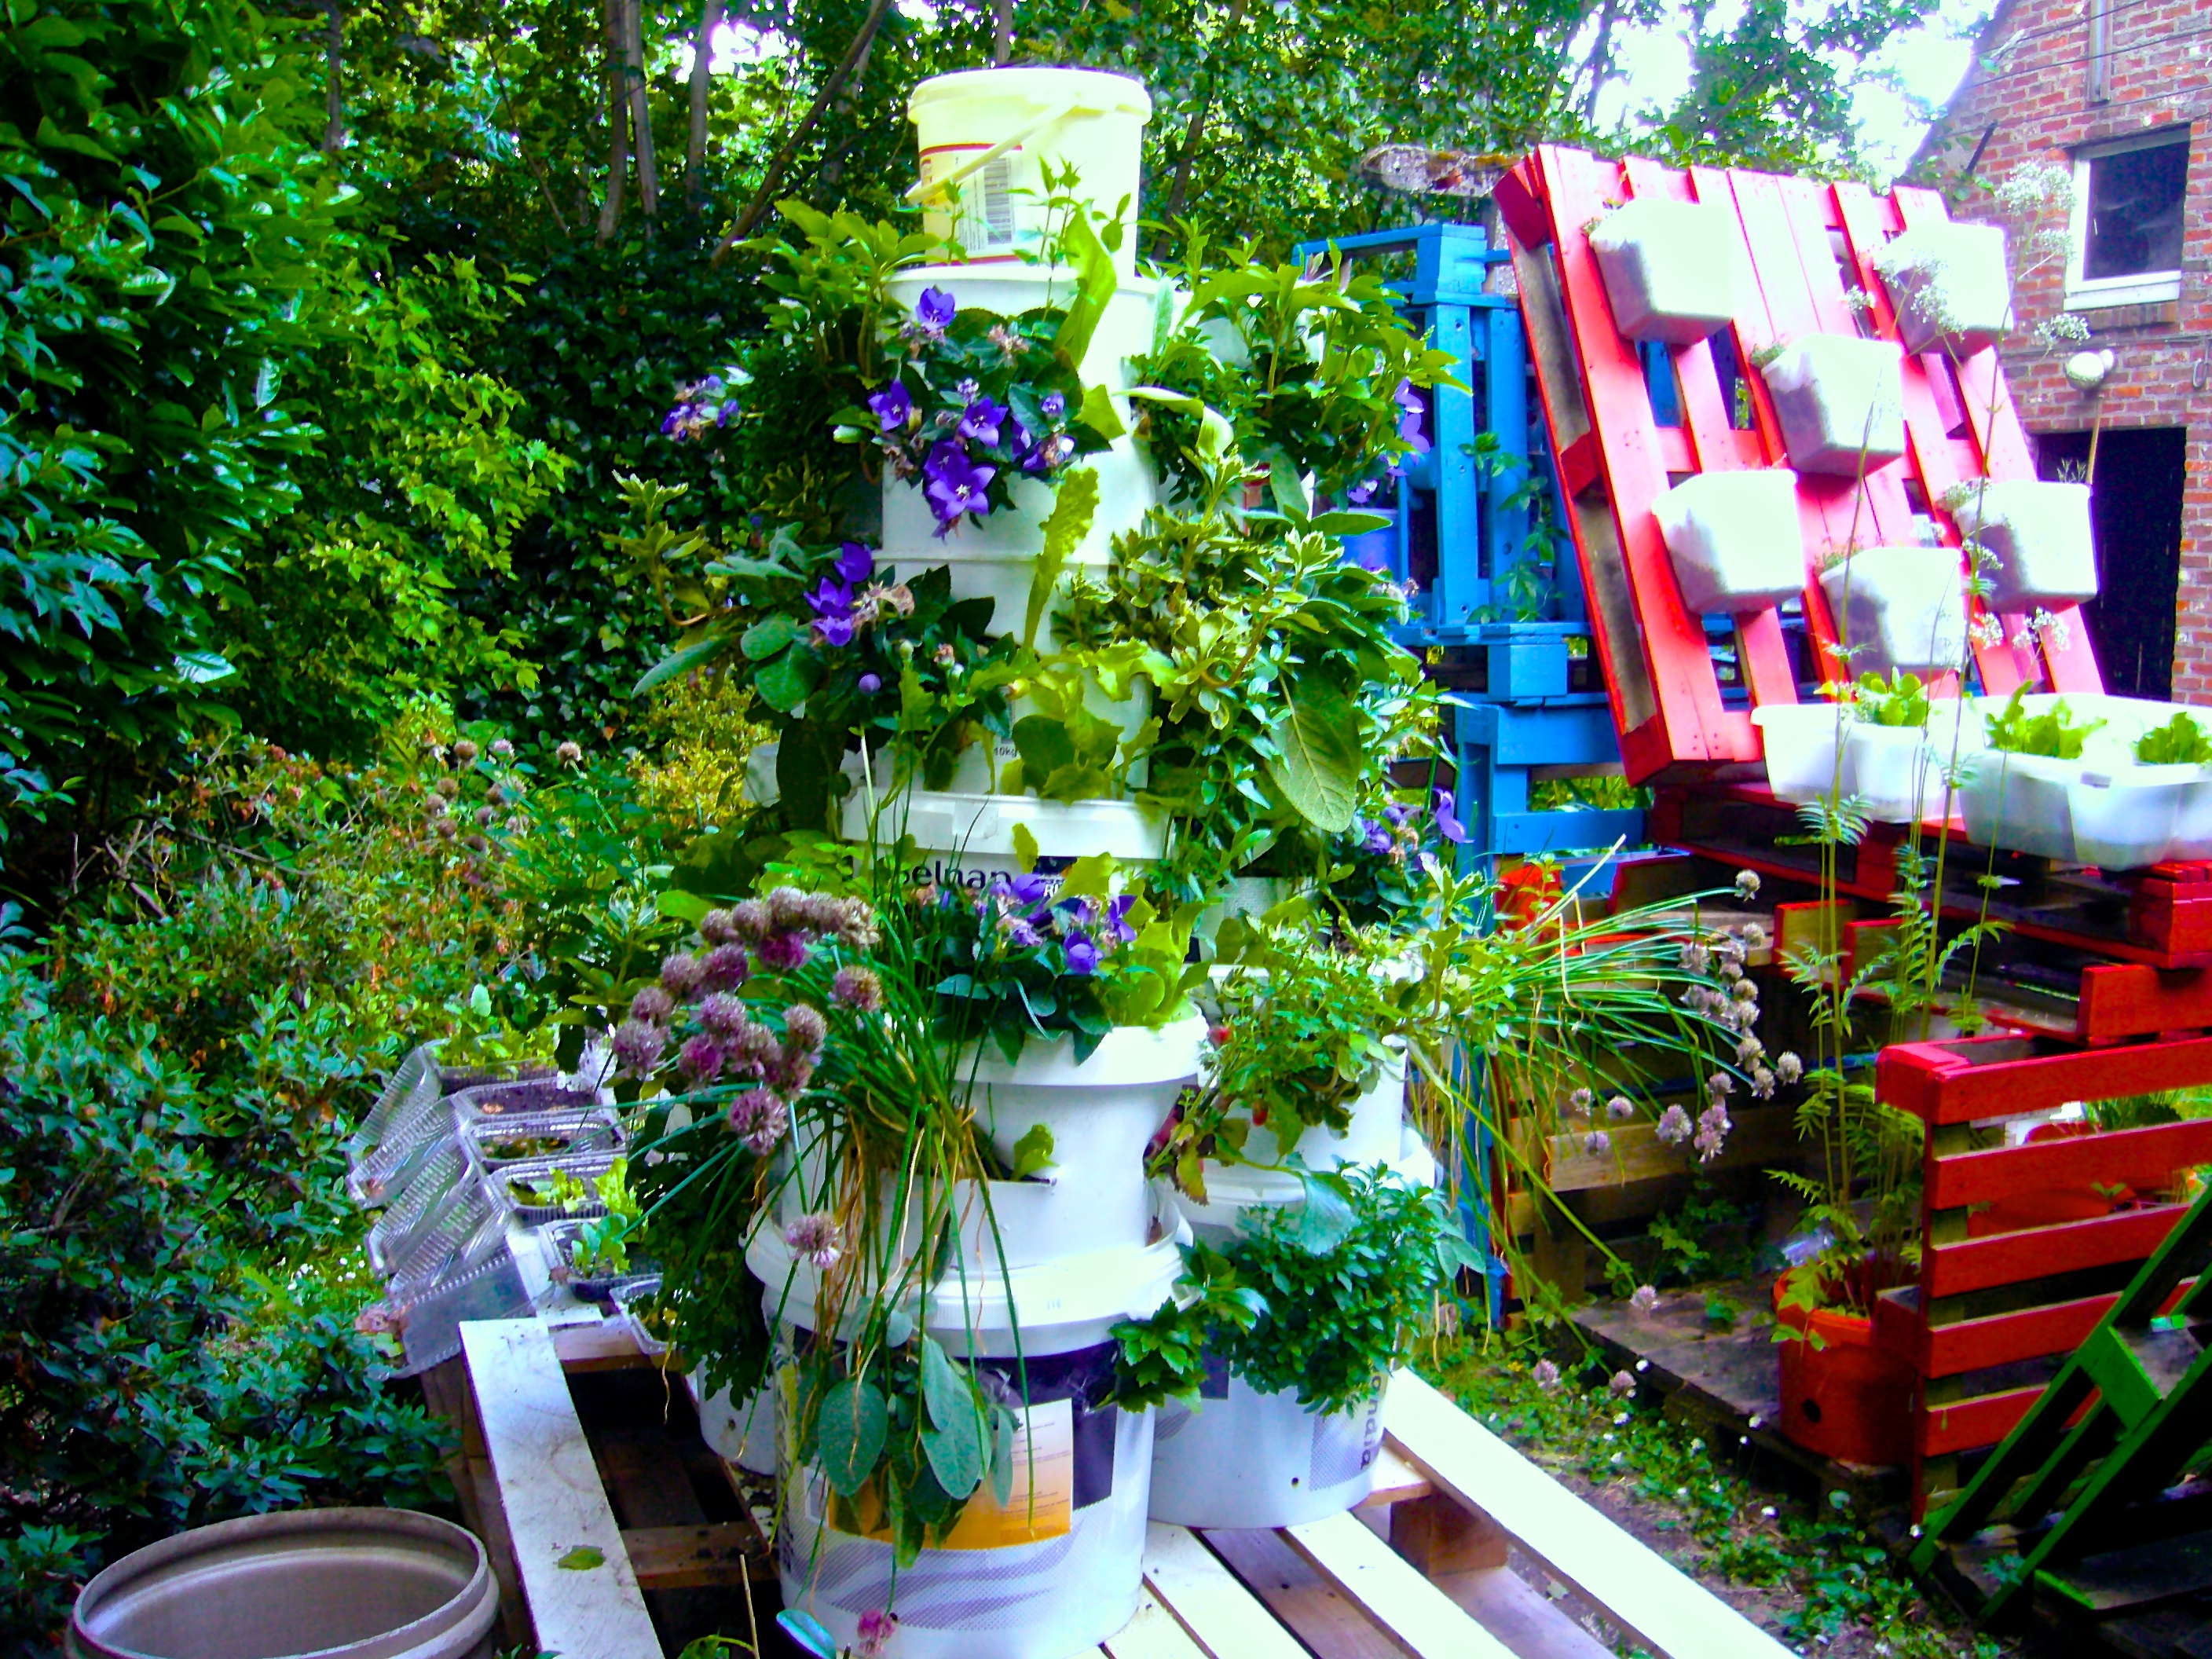 A Pyramid Of 3 Bucket Towers Planted With Flowering Plants, Vegetables And  Herbs   Photo